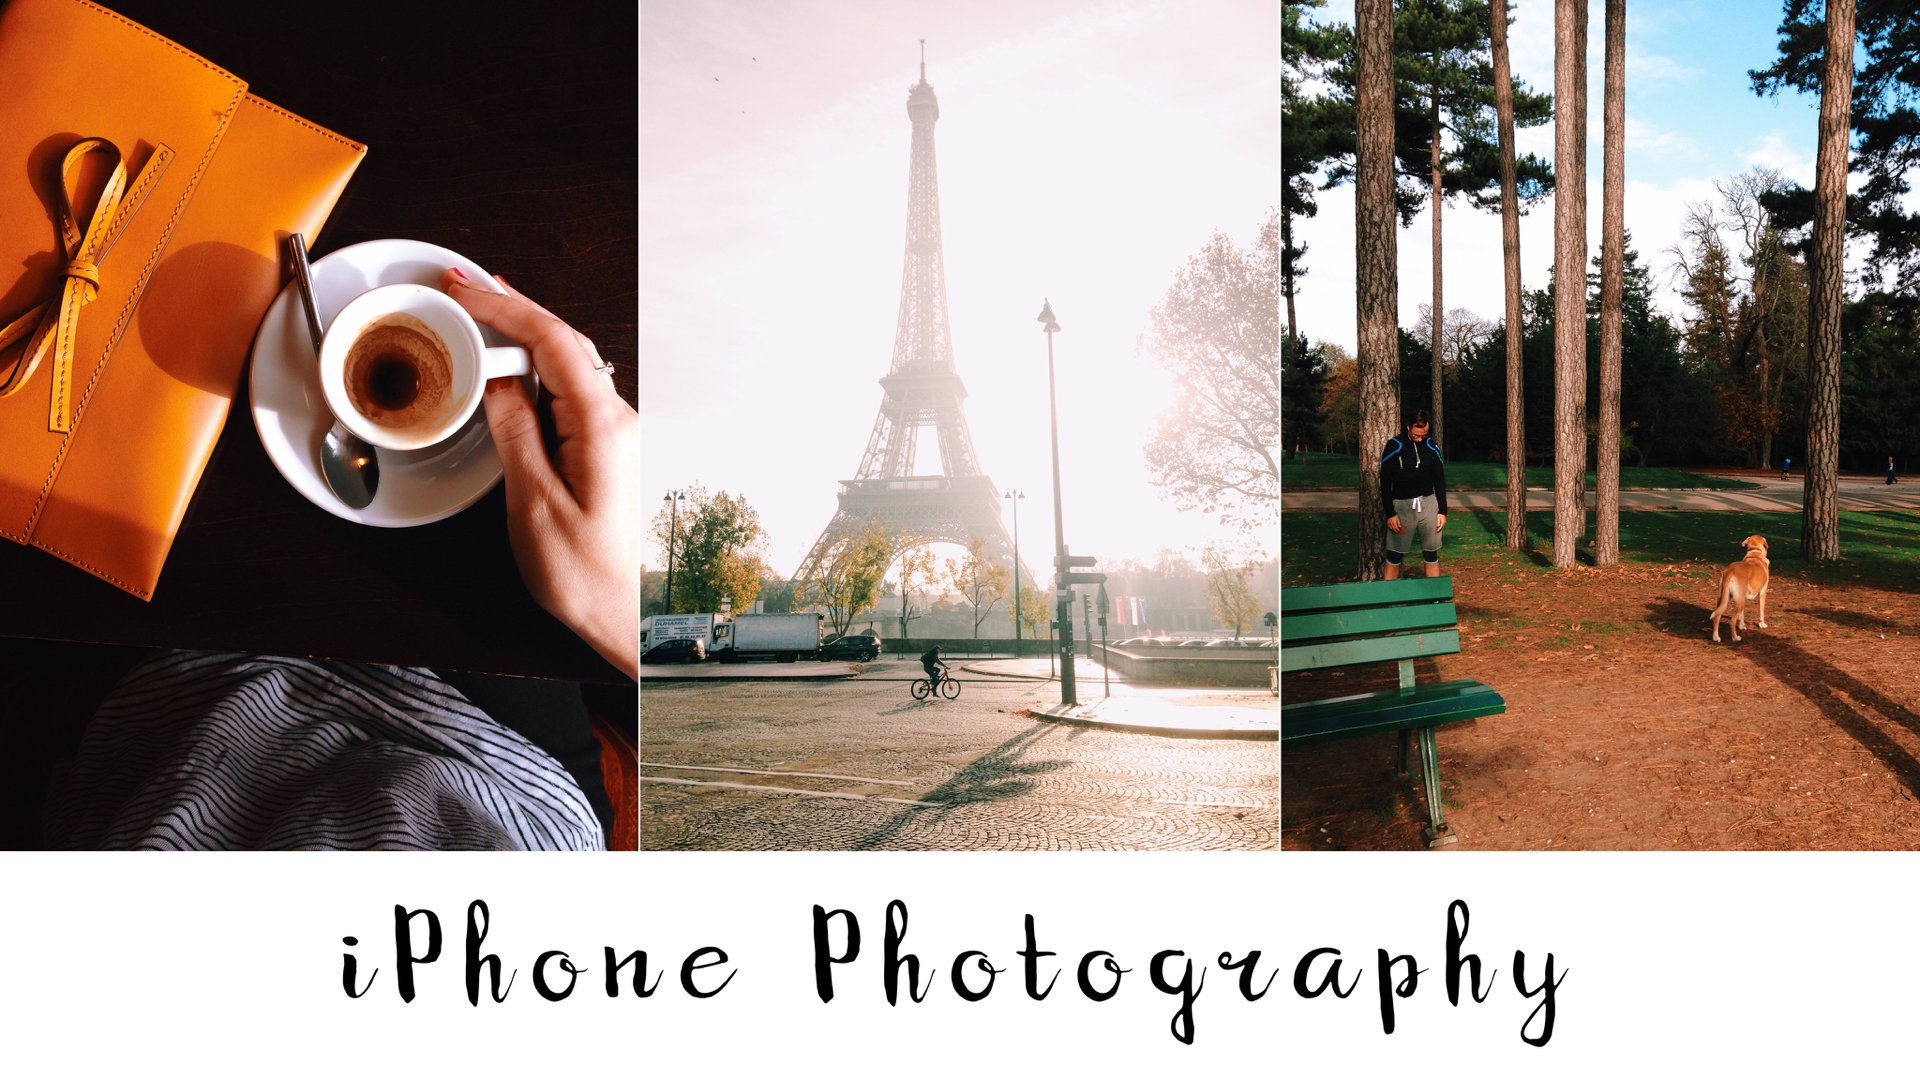 iPhone Photography: Make Your Pictures Stand Out | Mariya Popandopulo